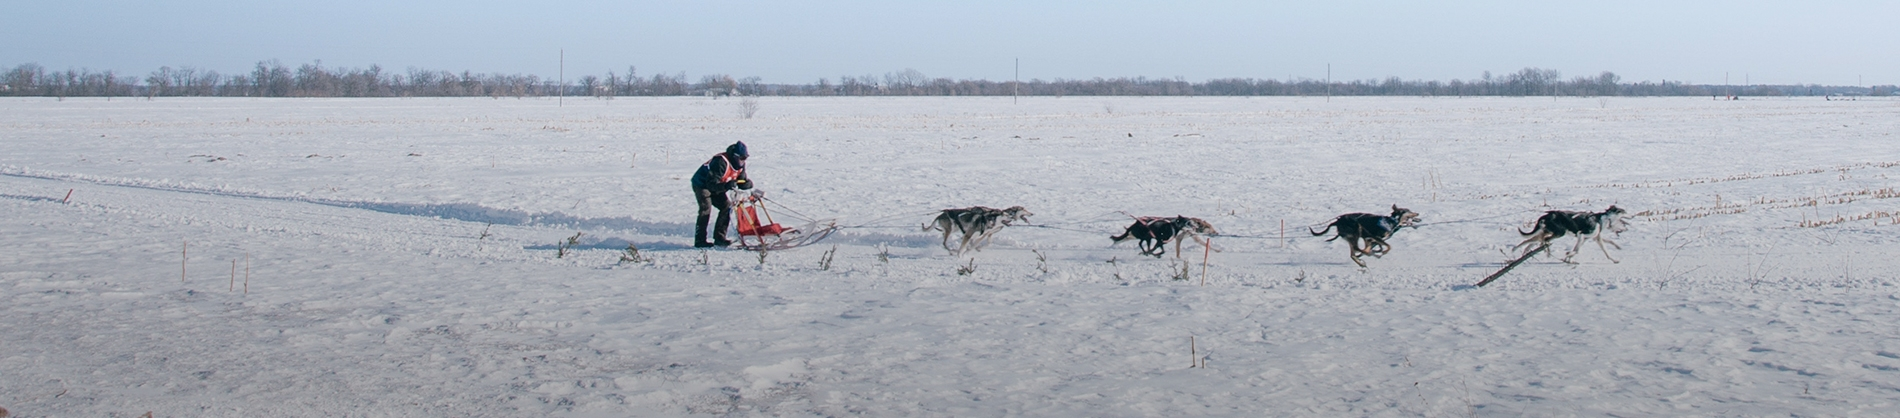 A man riding a sleigh pulled by dogs